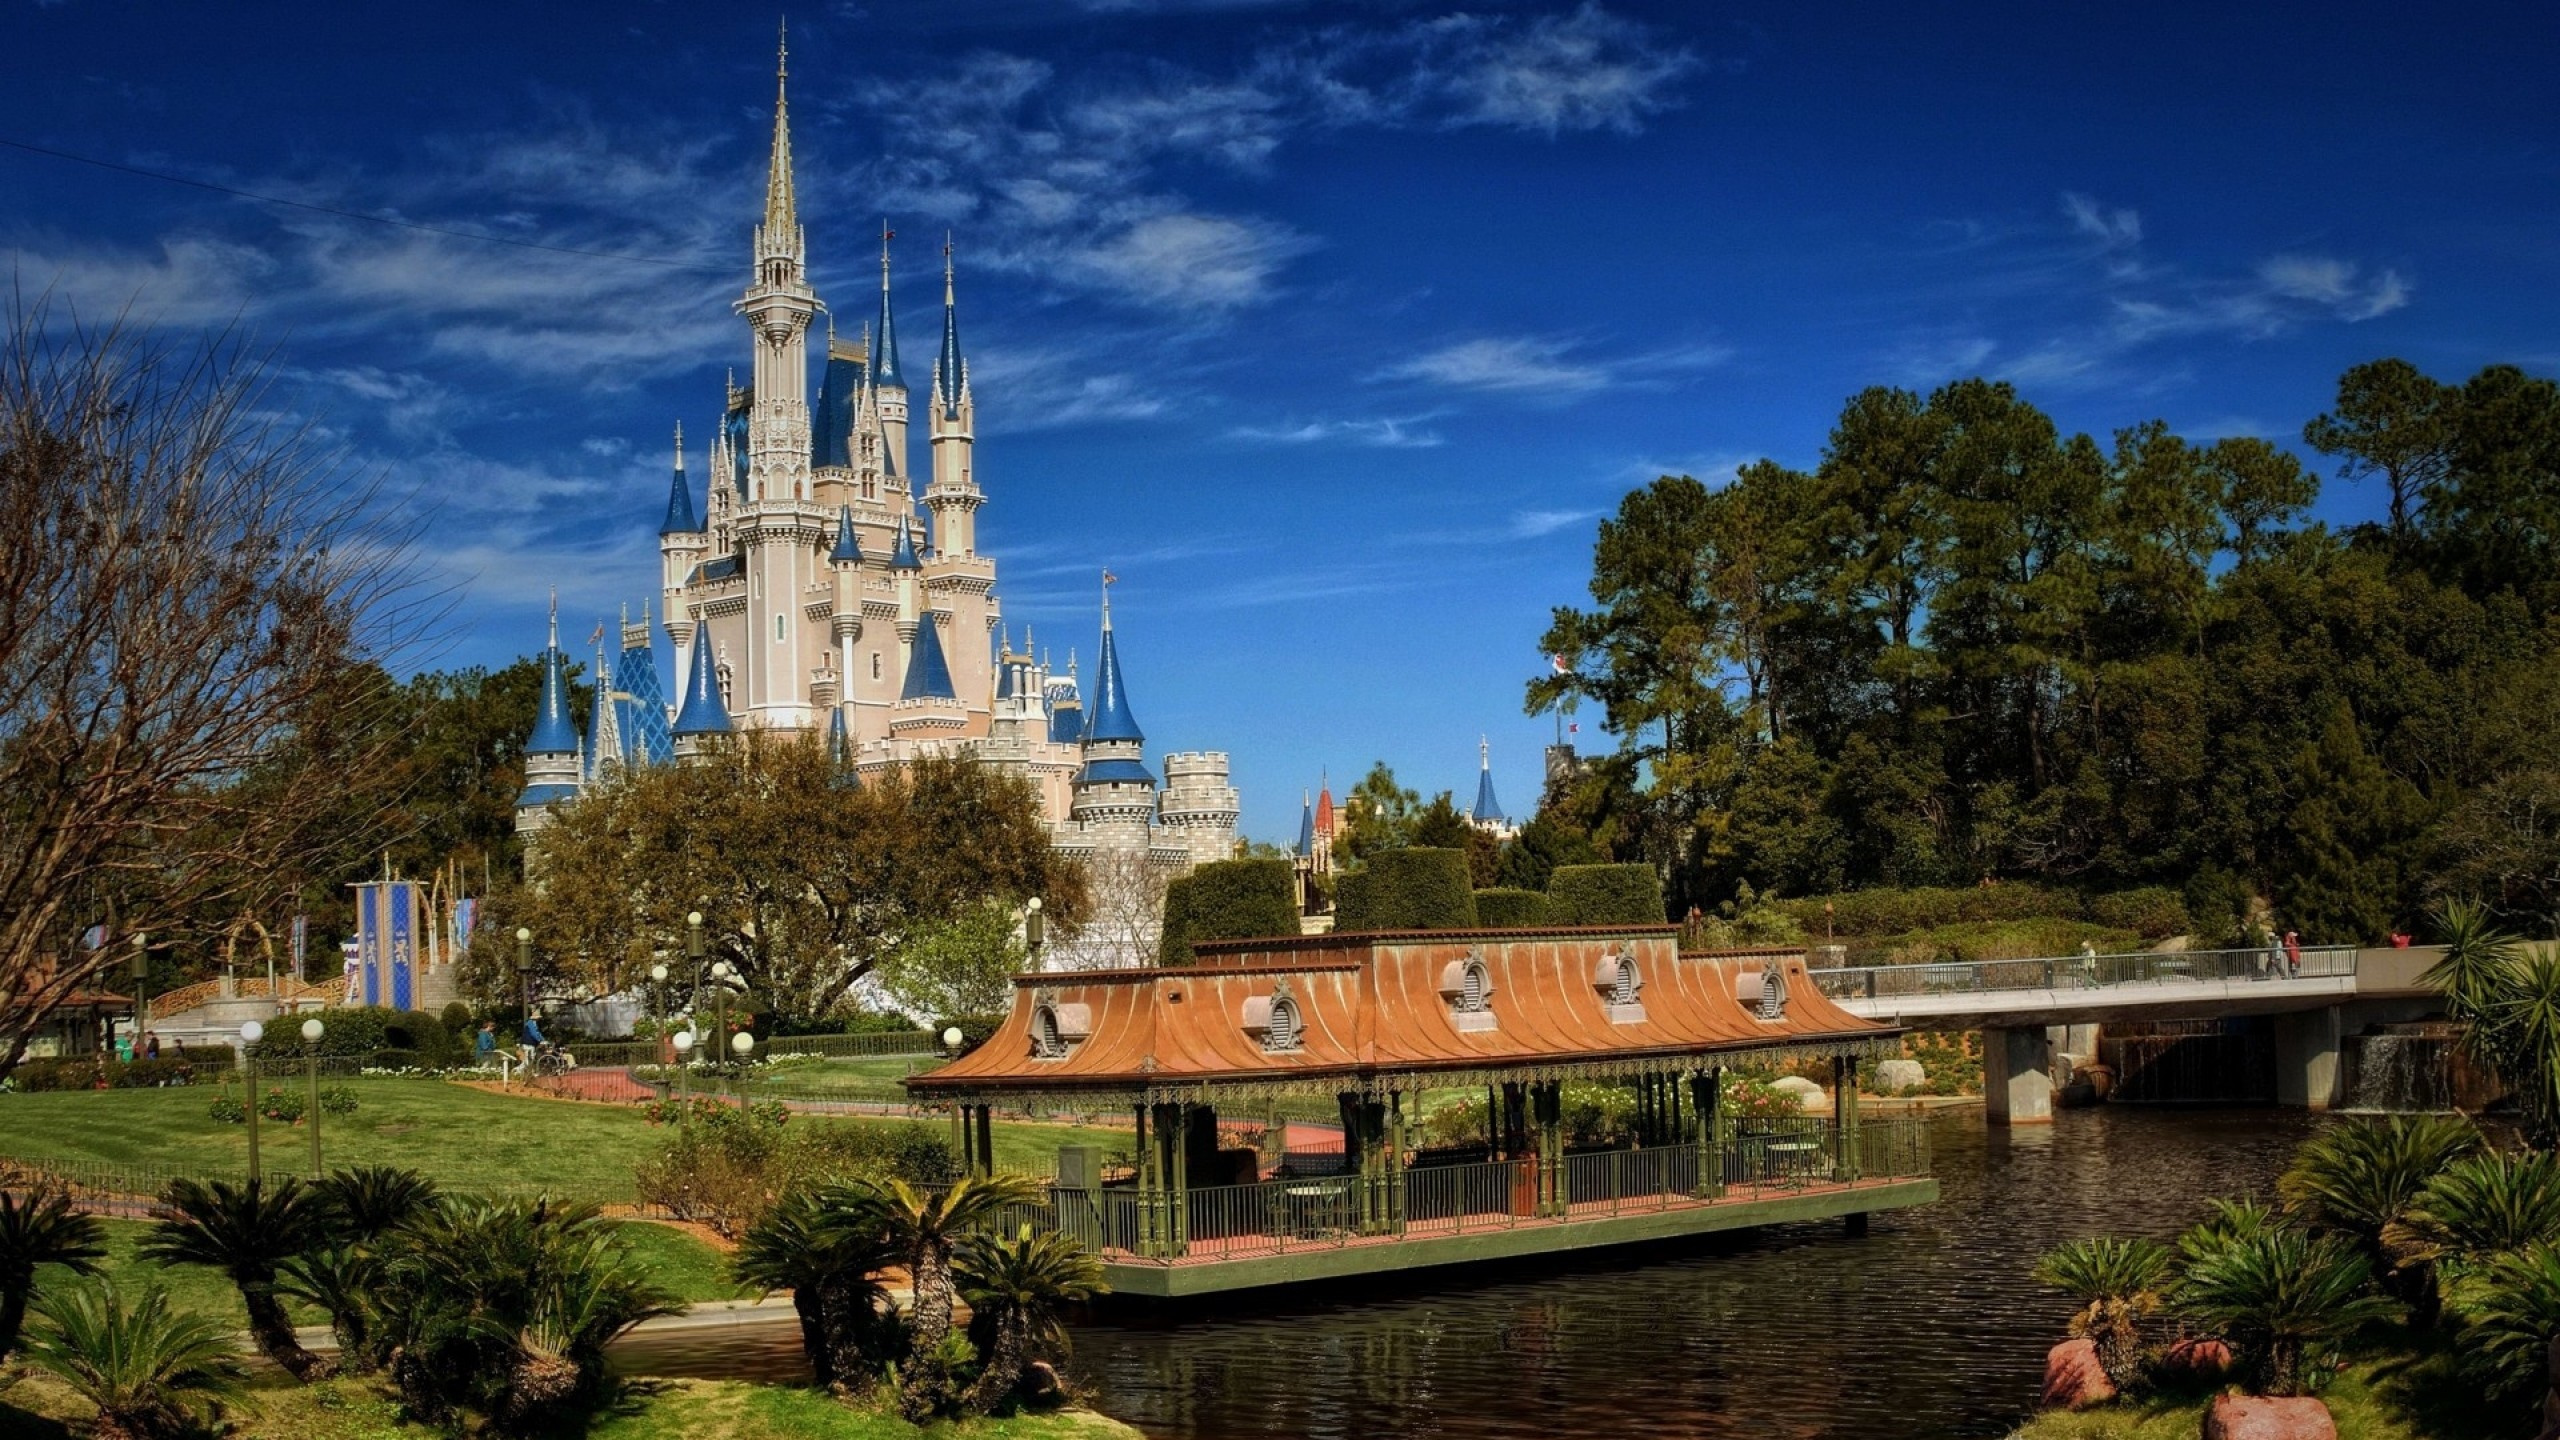 2560x1440 Preview wallpaper walt disney world, coast, building, fabulous, bridge,  nature